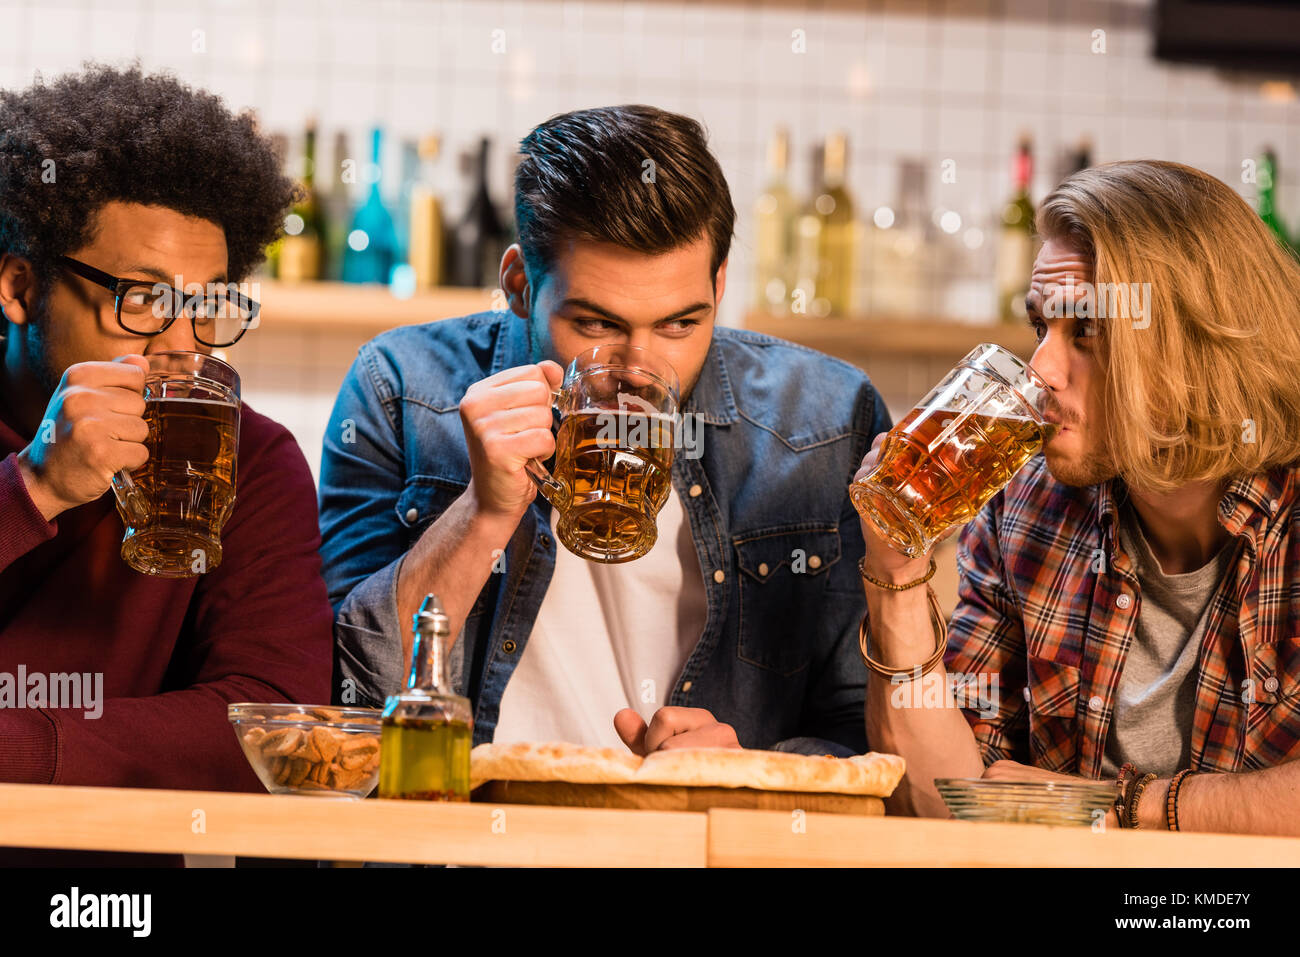 friends with pizza and beer in bar - Stock Image